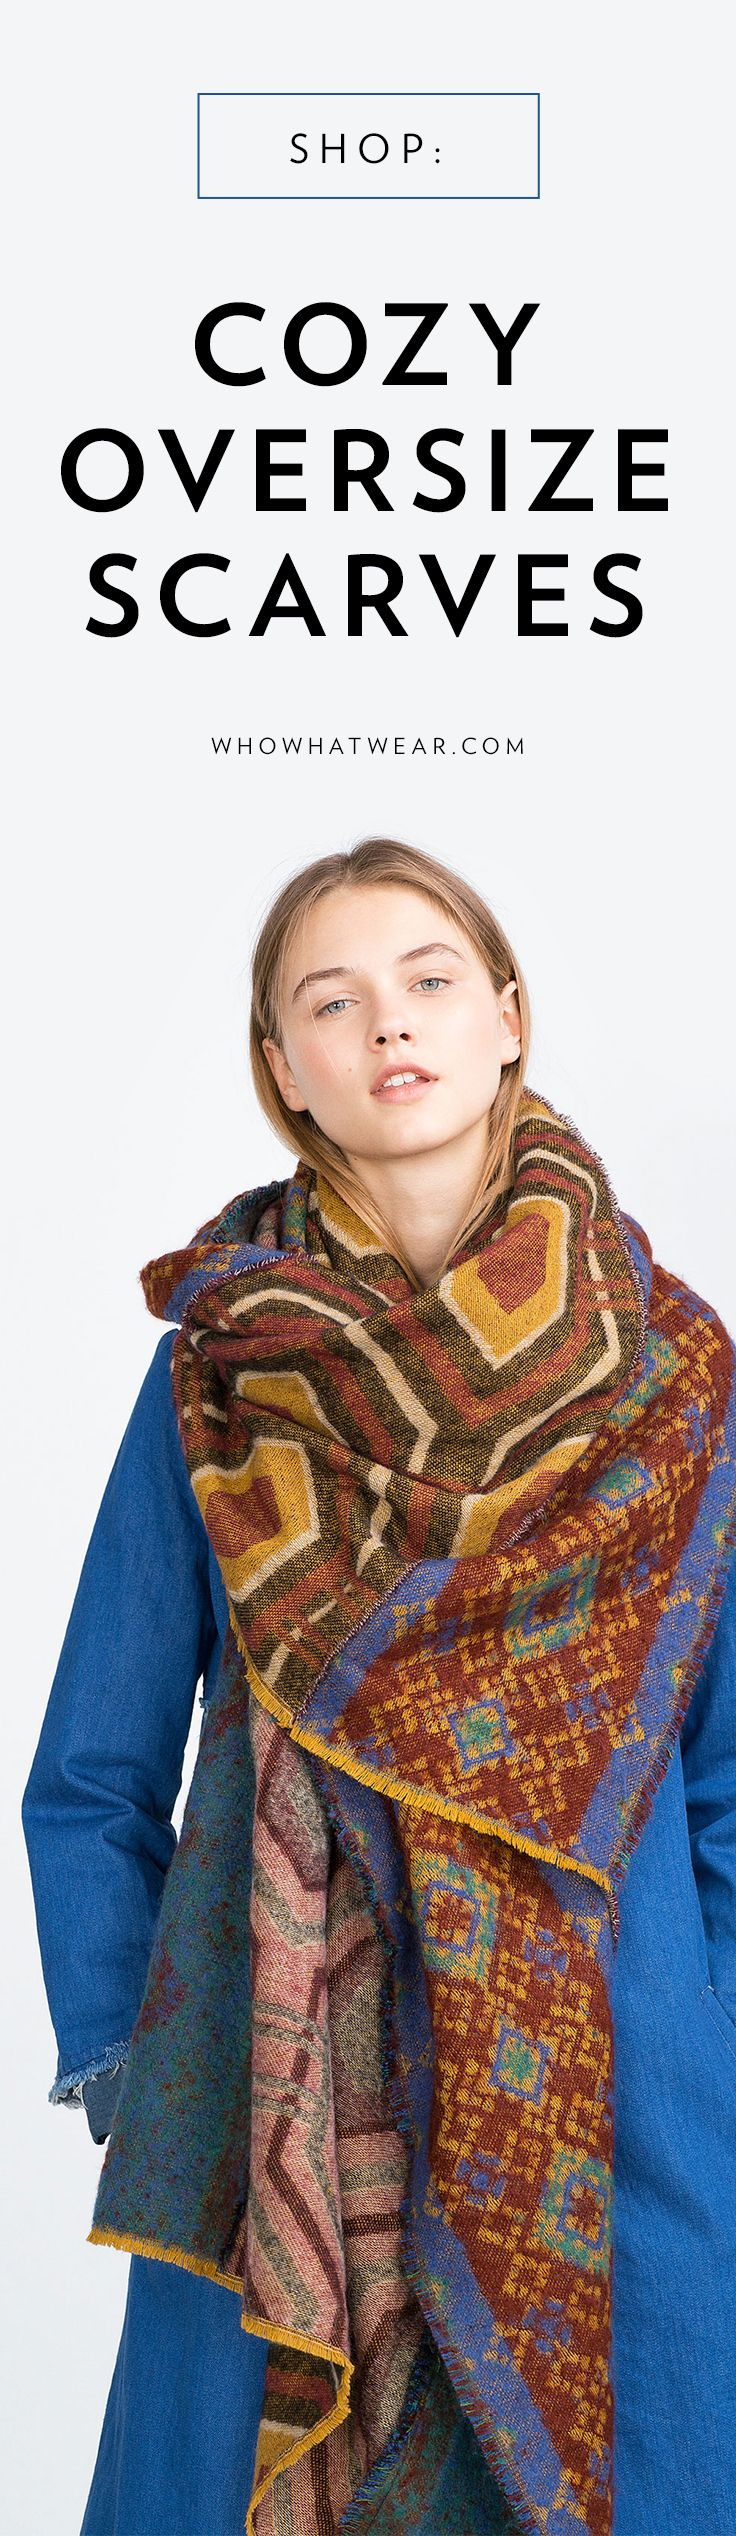 Warm scarves that can act as an accessory, blanket, and more!